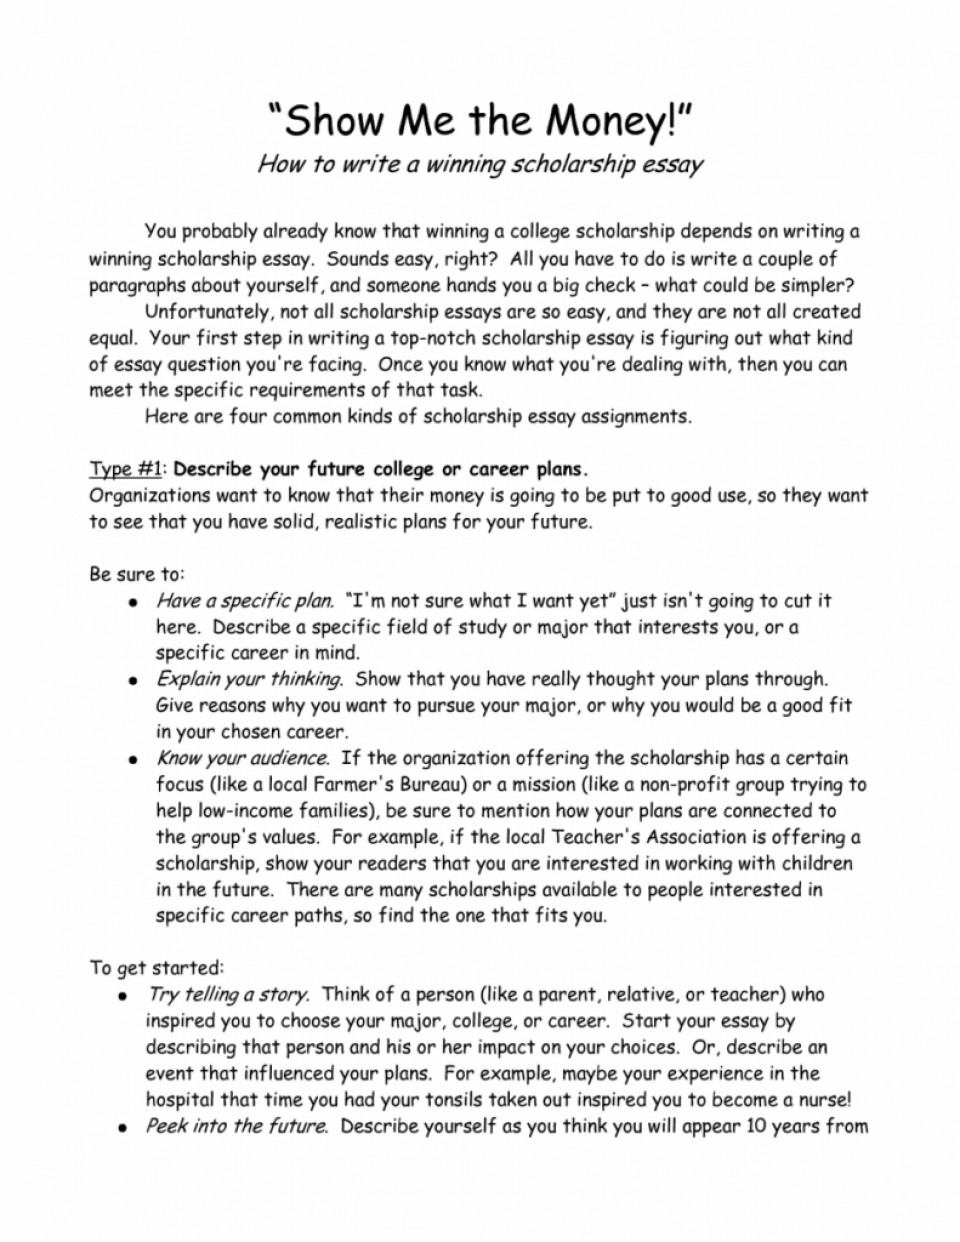 014 Travel Essay Example On Travelling The School Bus Examples How To Write Business Cover Letter Experience Sample Tagalog Journal Time Writing Photo Pdf Unique Definition Submissions 960